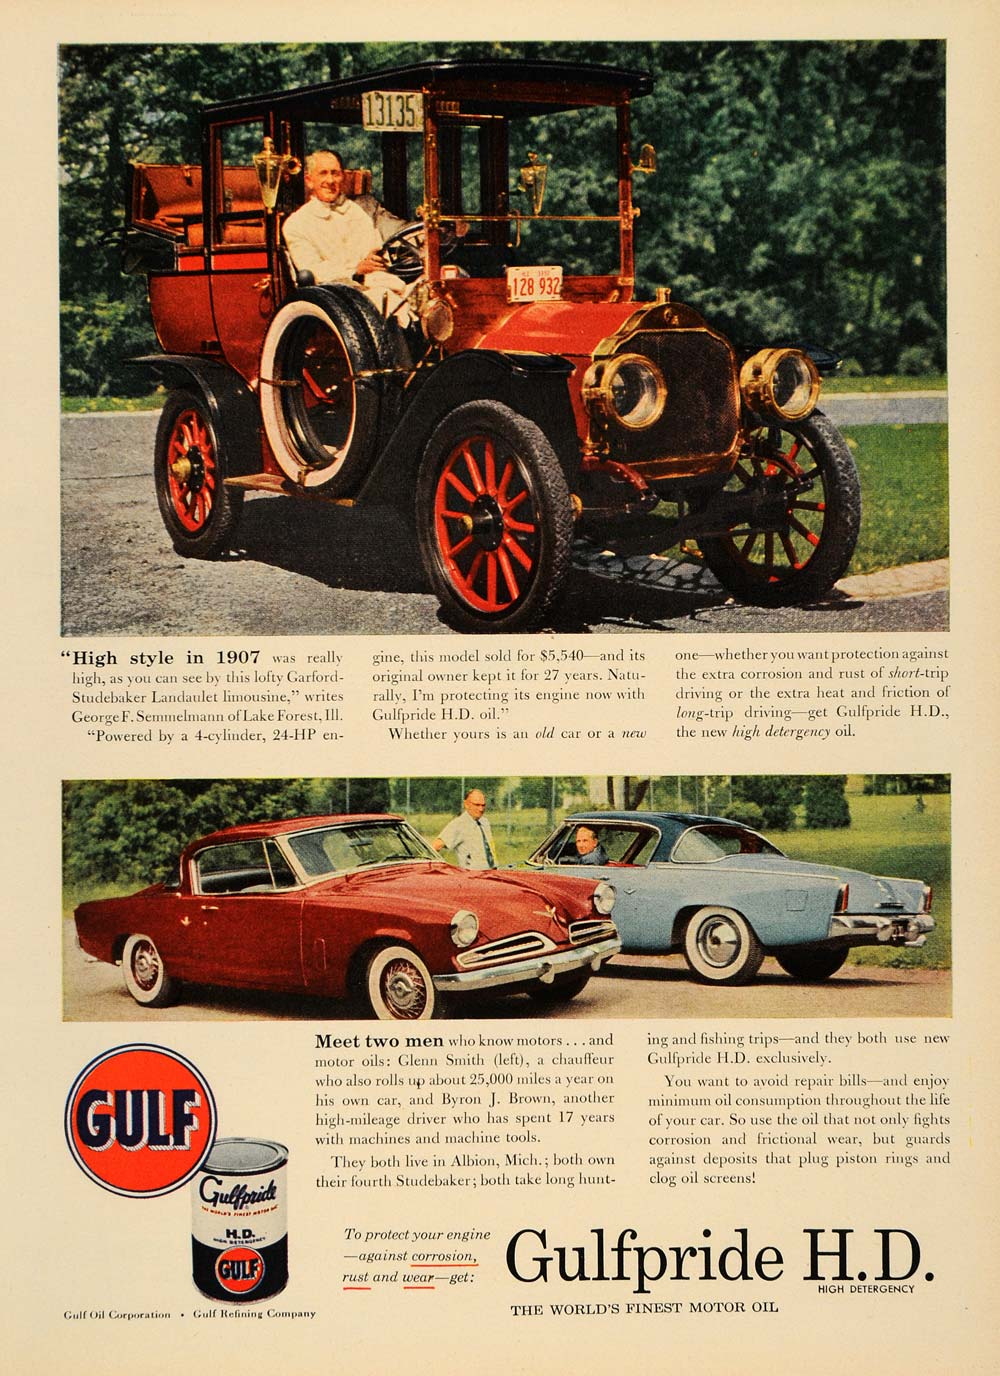 1953 Ad Gulf Oil Gulfpride H D Motor Oil Vintage Cars - ORIGINAL ADVERTISING TM6